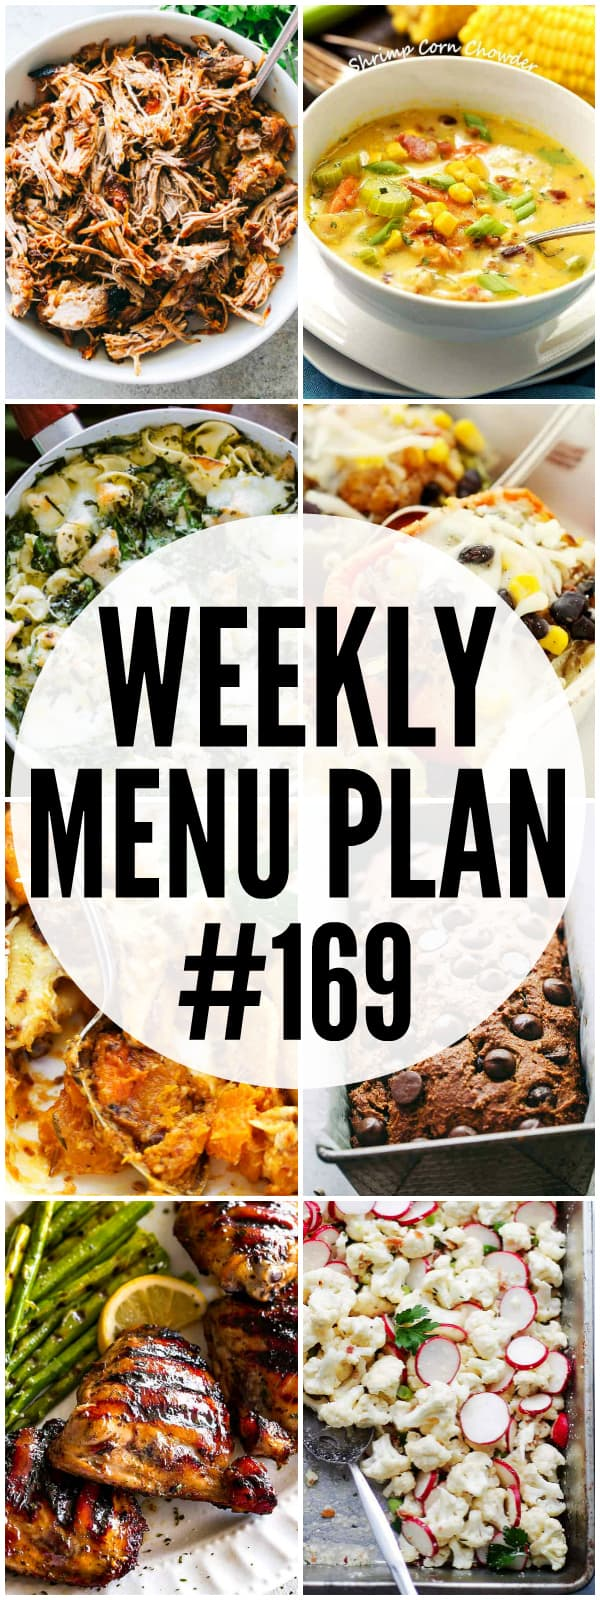 WEEKLY MENU PLAN (#169) - A delicious collection of dinner, side dish and dessert recipes to help you plan your weekly menu and make life easier for you!